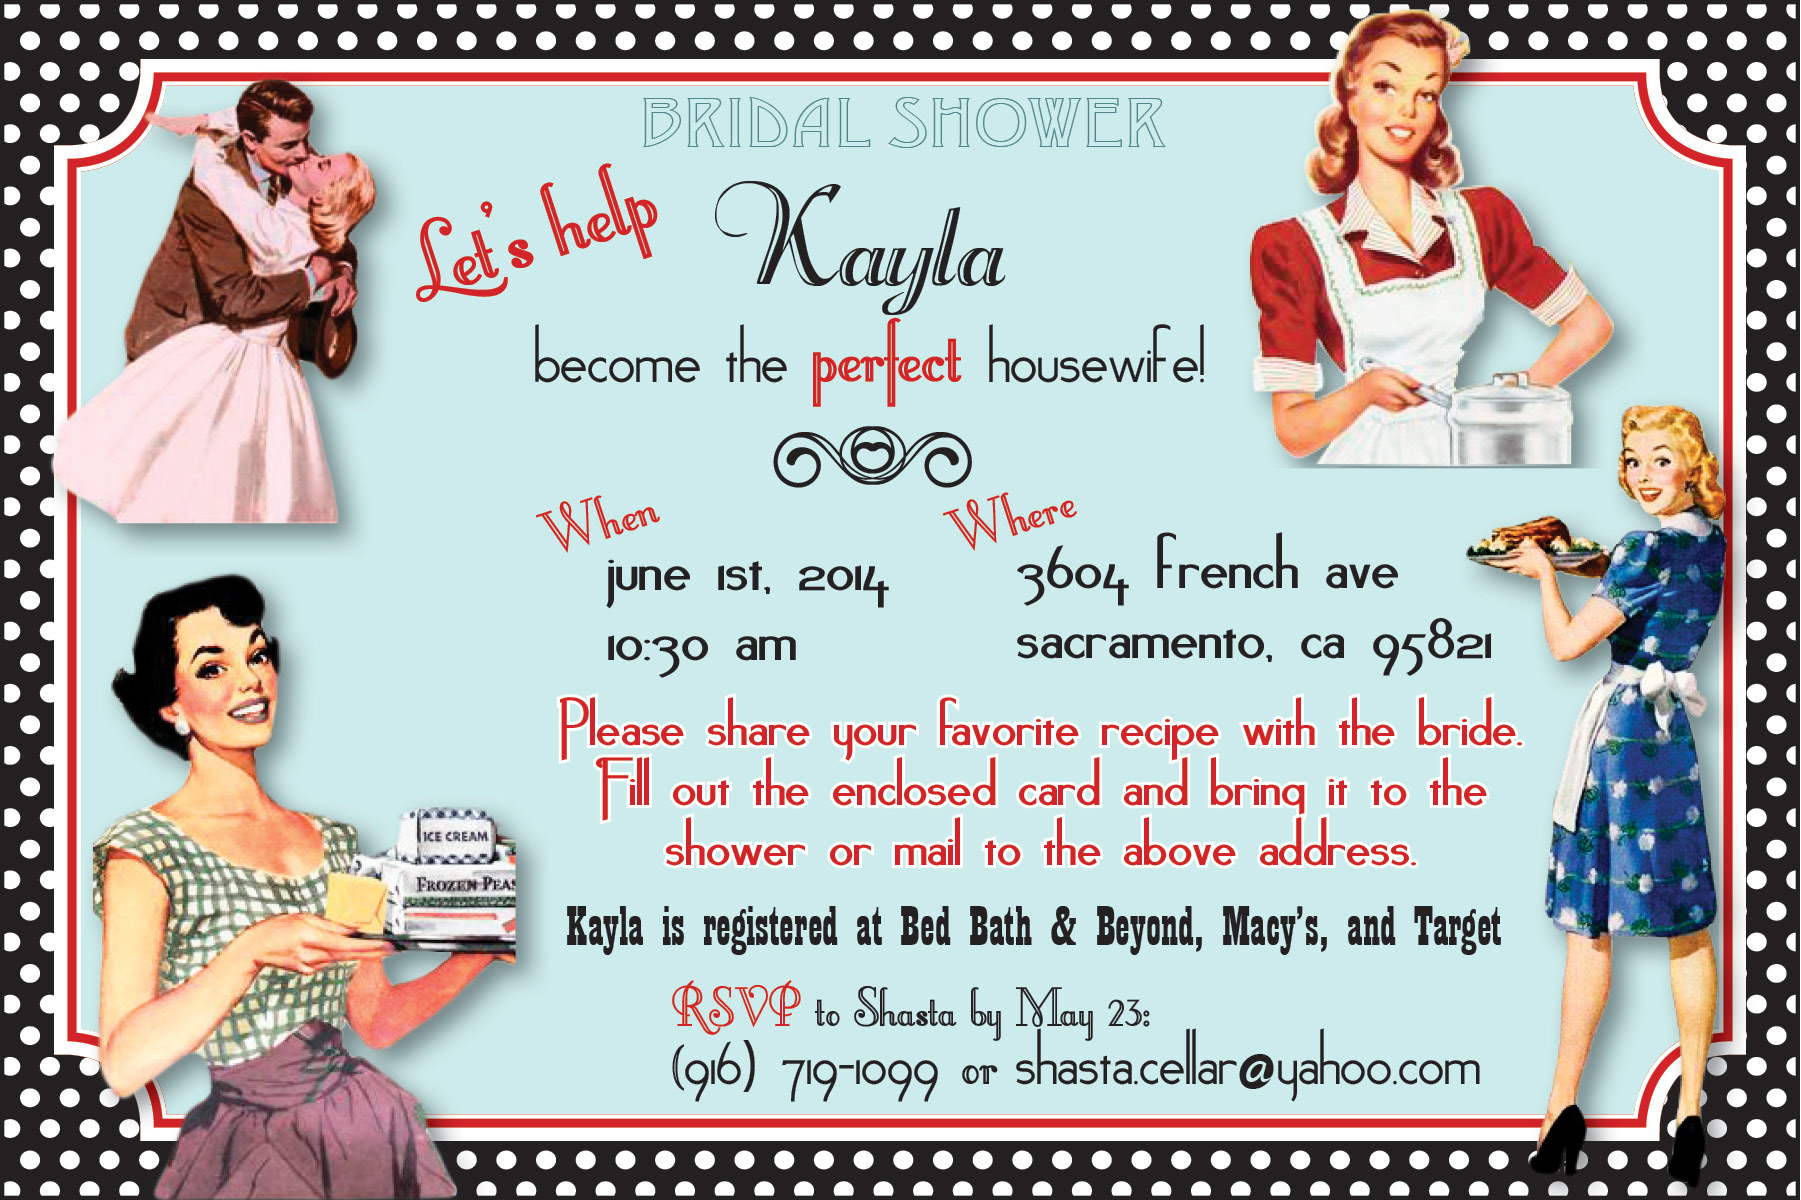 retro housewives bridal shower invitation